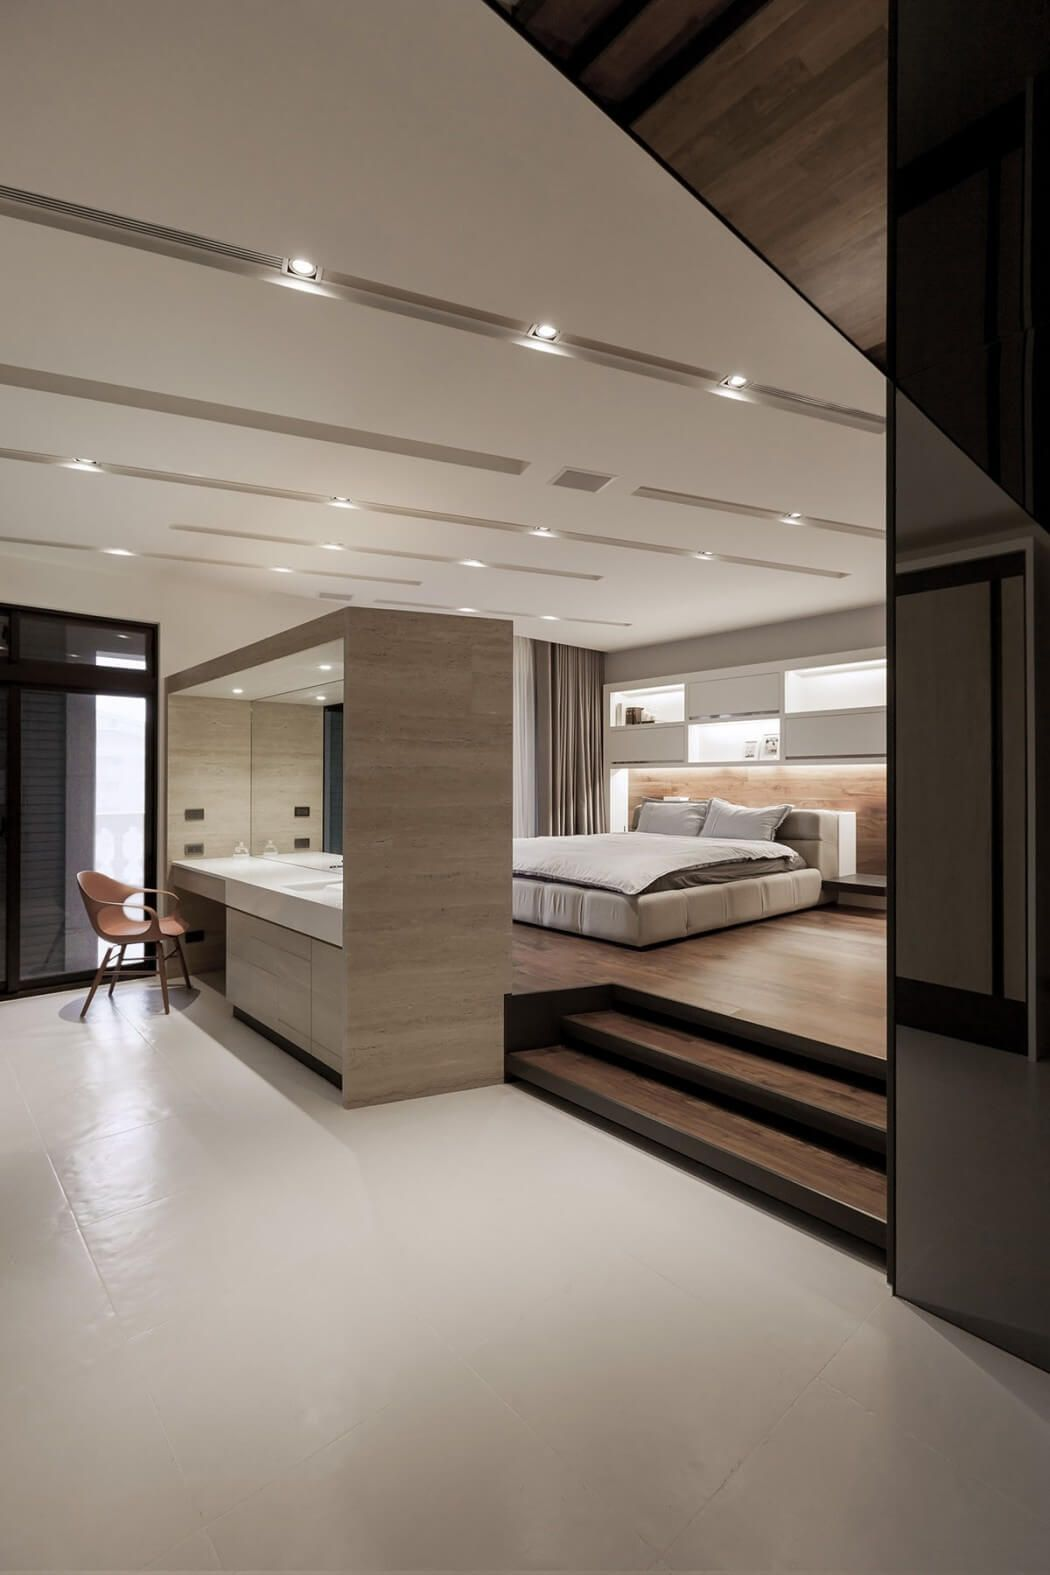 Lo Residence by LGCA DESIGN | Interior | Pinterest | Bedrooms ...